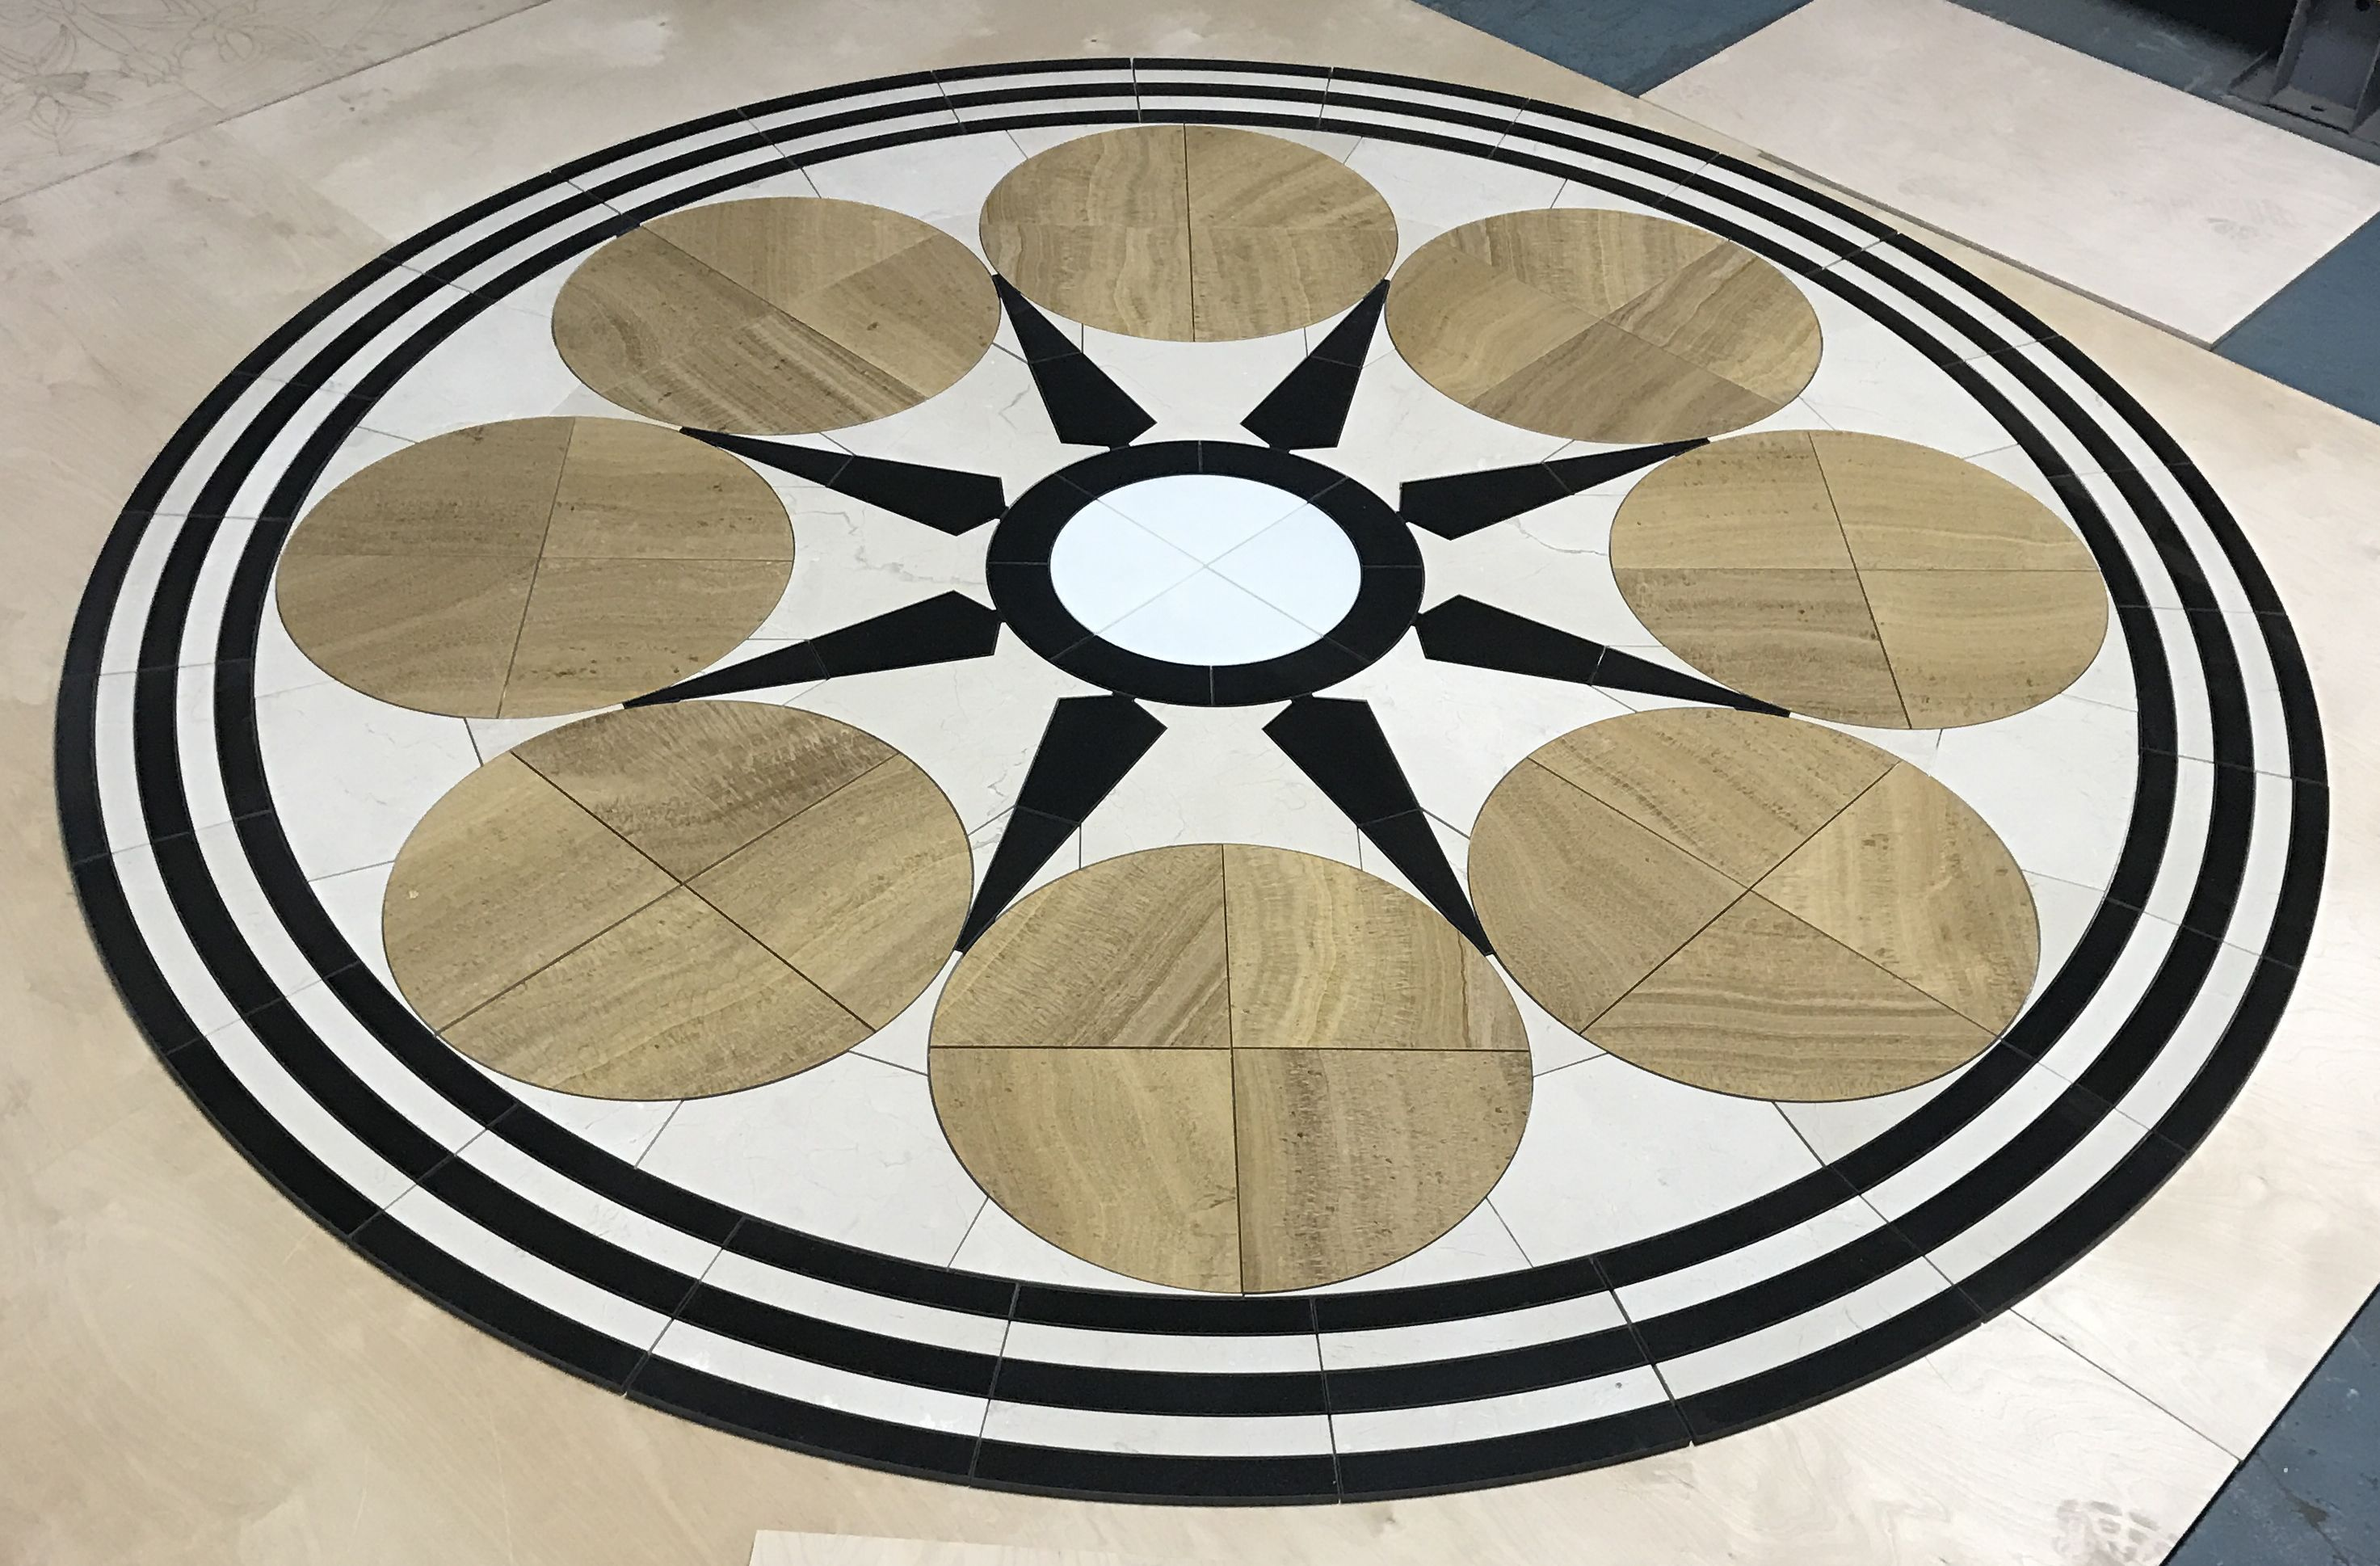 Oshkosh Designs 8 Custom Stone Floor Medallion